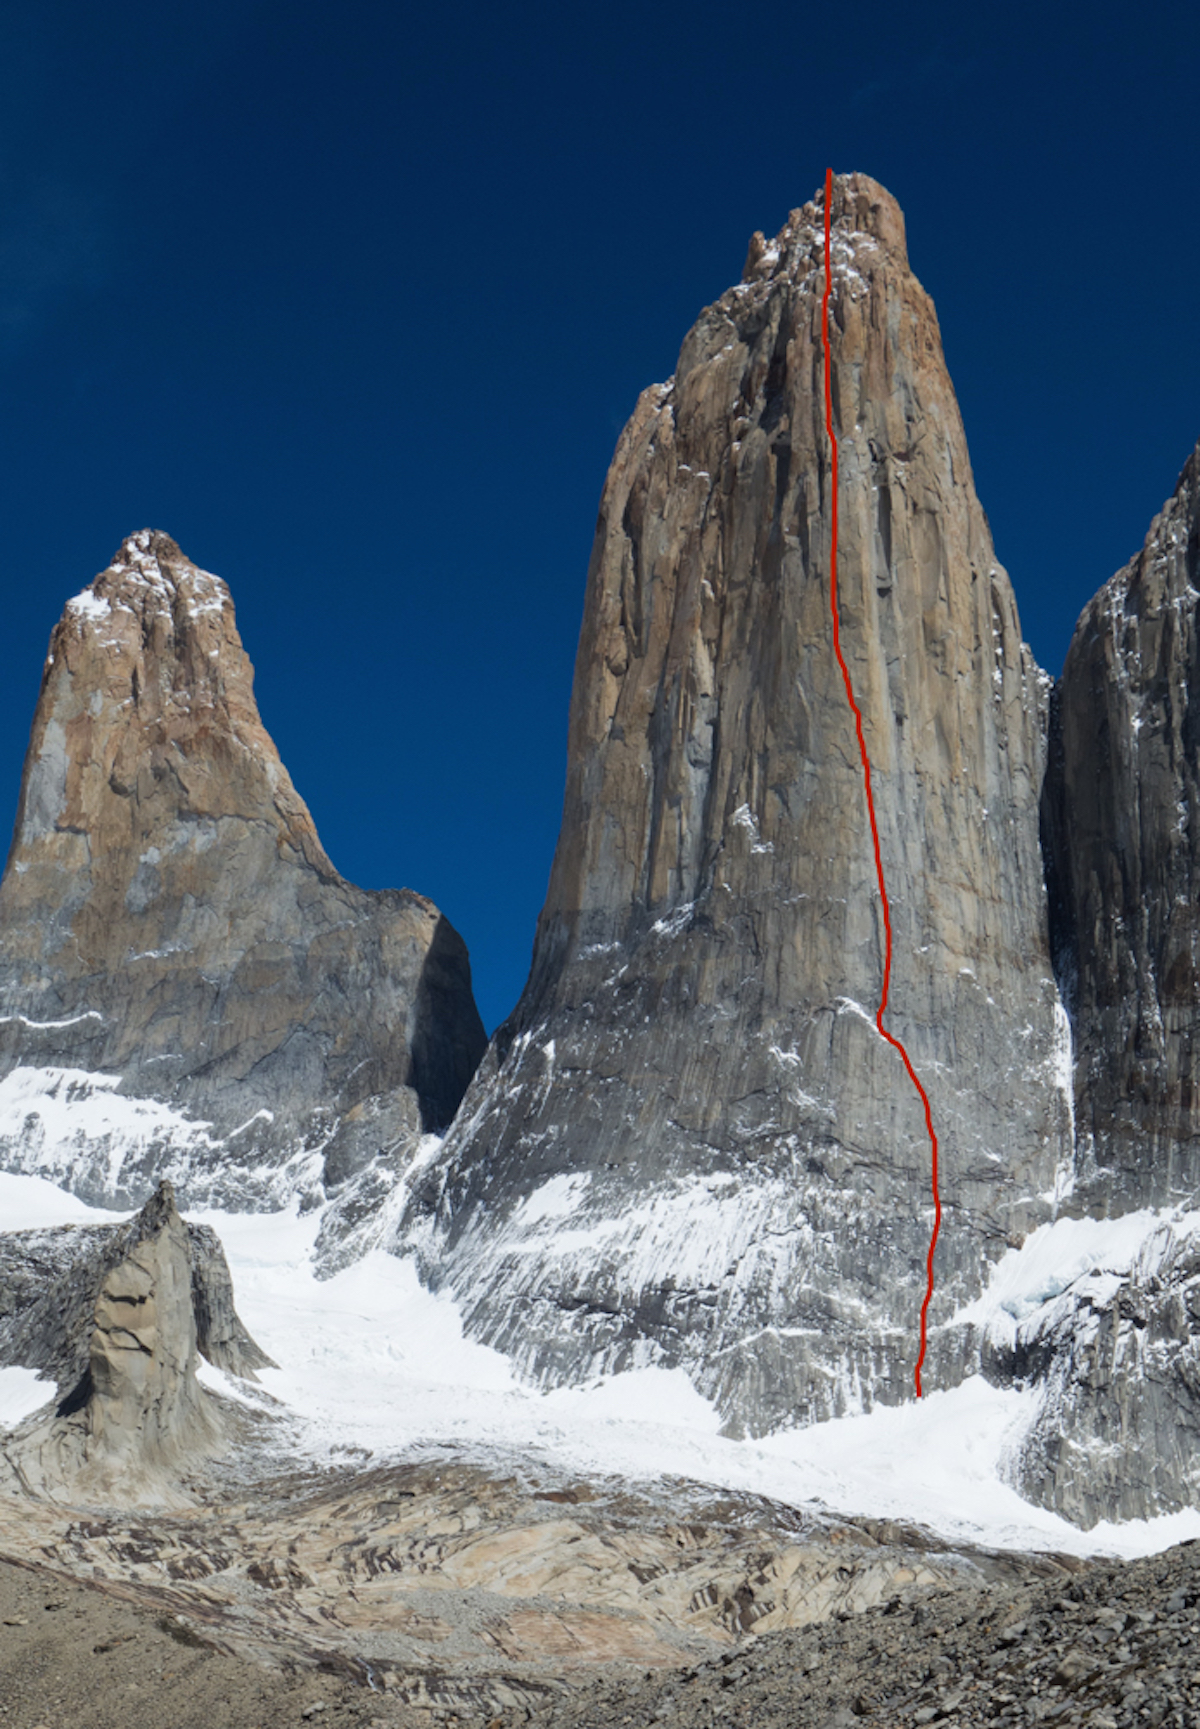 El Regalo de Mwono on the Central Tower, Torres del Paine, Patagonia (VI 5.13b, 1200m) was first climbed in the early 1990s by Paul Pritchard, Sean Smith, Noel Craine and Simon Yates and rated VI 5.10 A4. [Photo] Courtesy of Nico Favresse, Siebe Vanhee and Sean Villanueva O'Driscoll